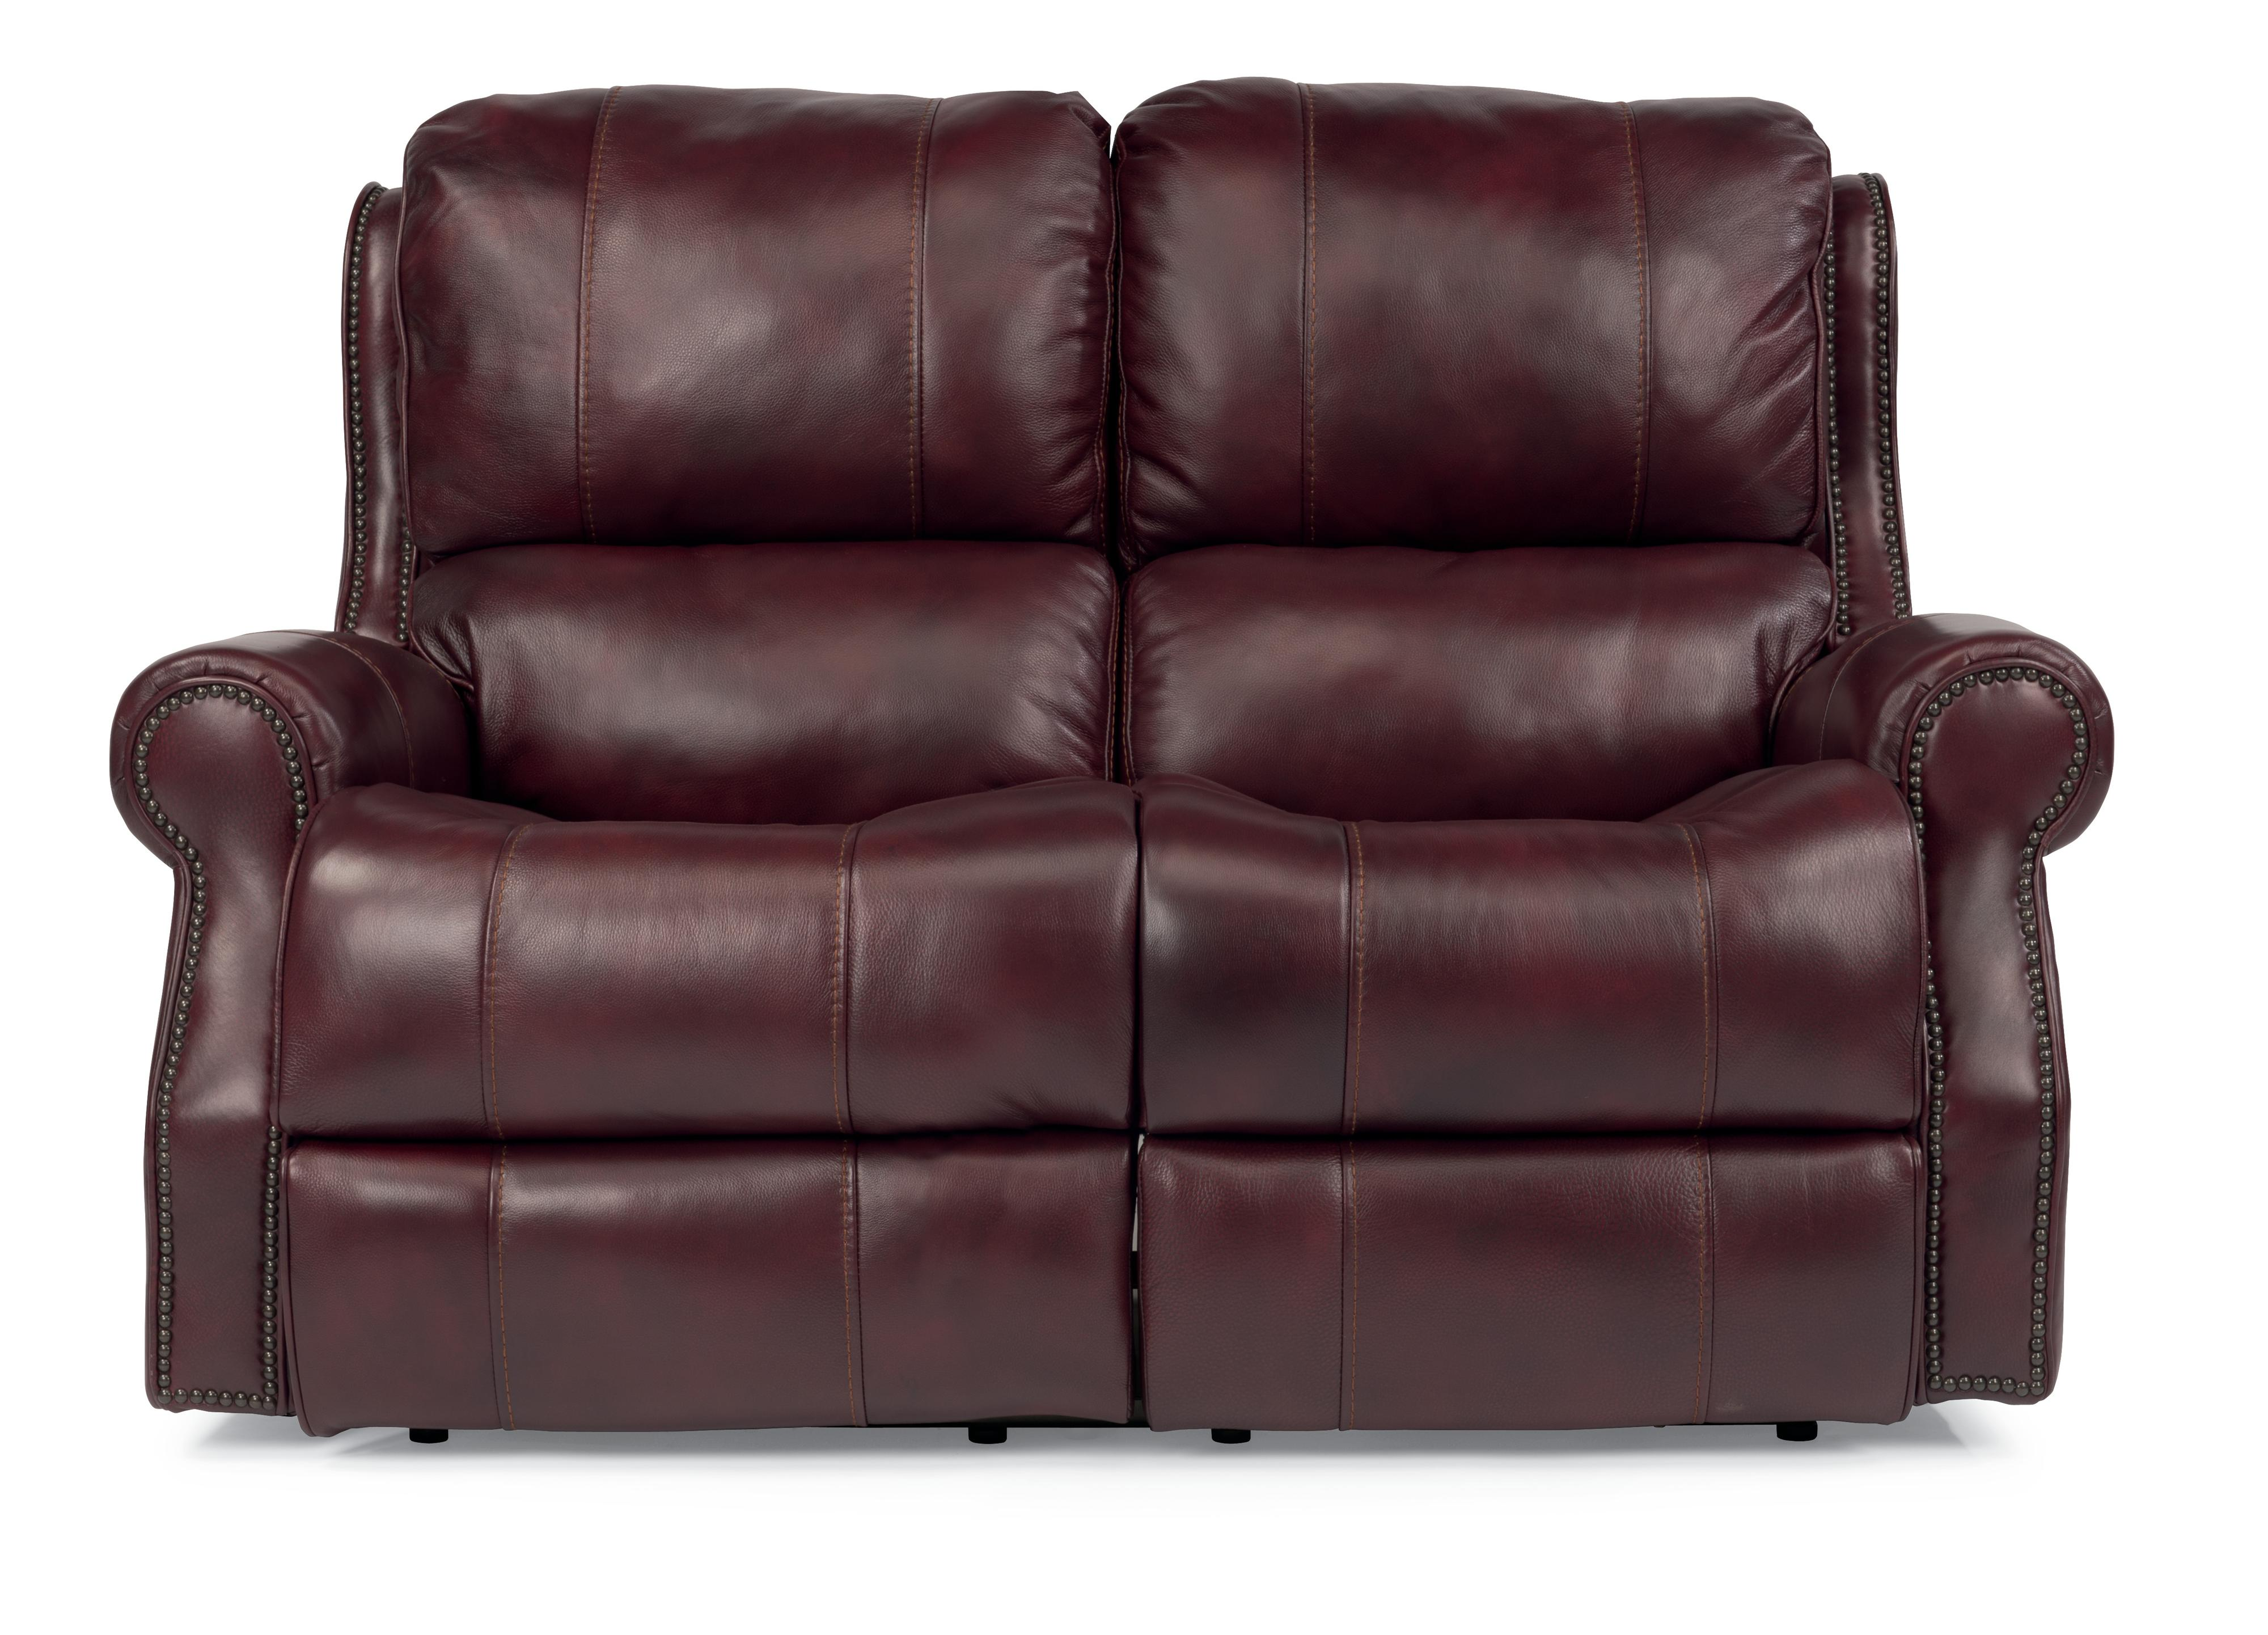 Flexsteel Latitudes-Miles Power Reclining Leather Loveseat - Item Number: 1533-60P